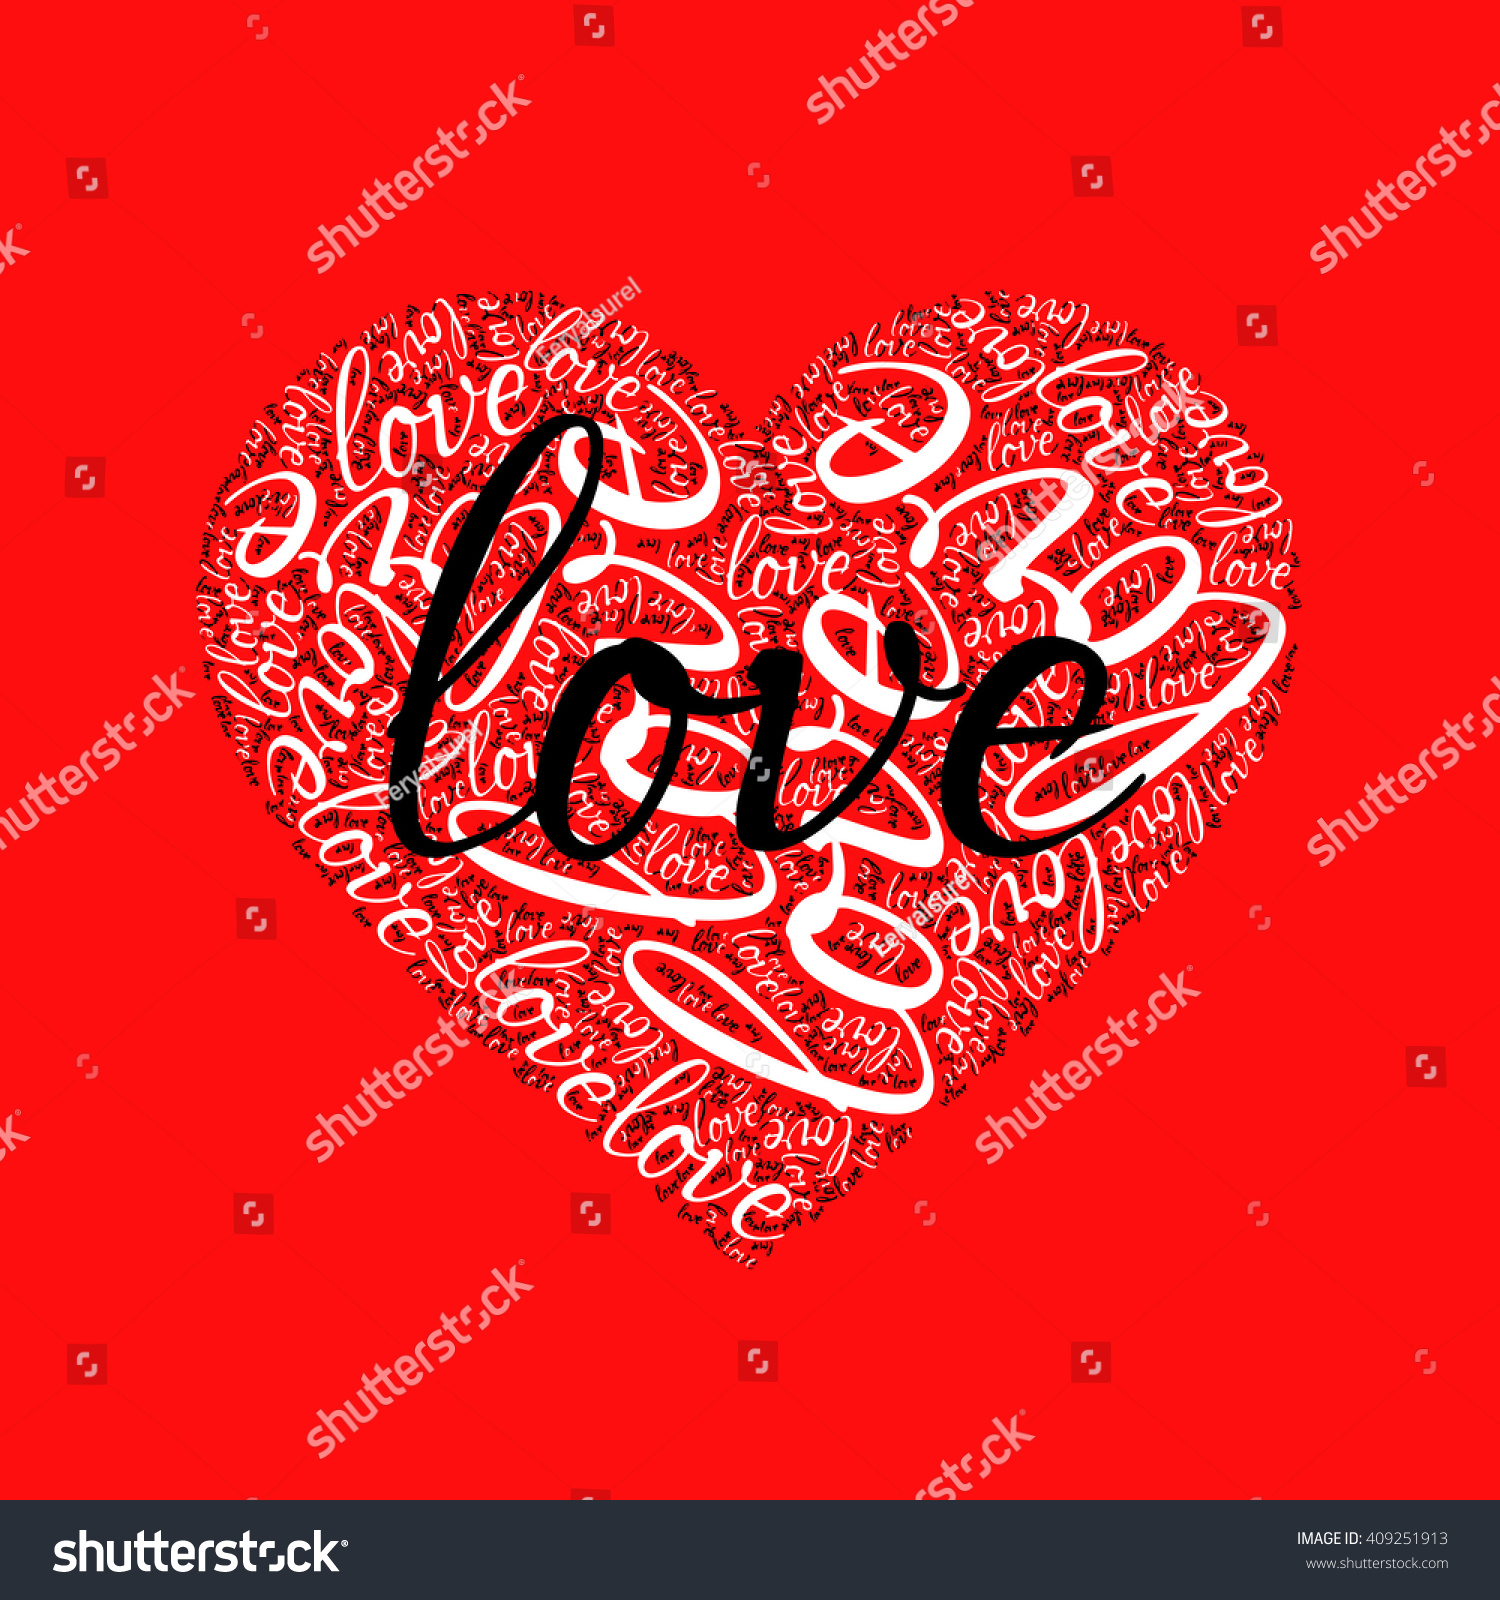 Red Background Black Love Words Love Stock Vector (Royalty Free